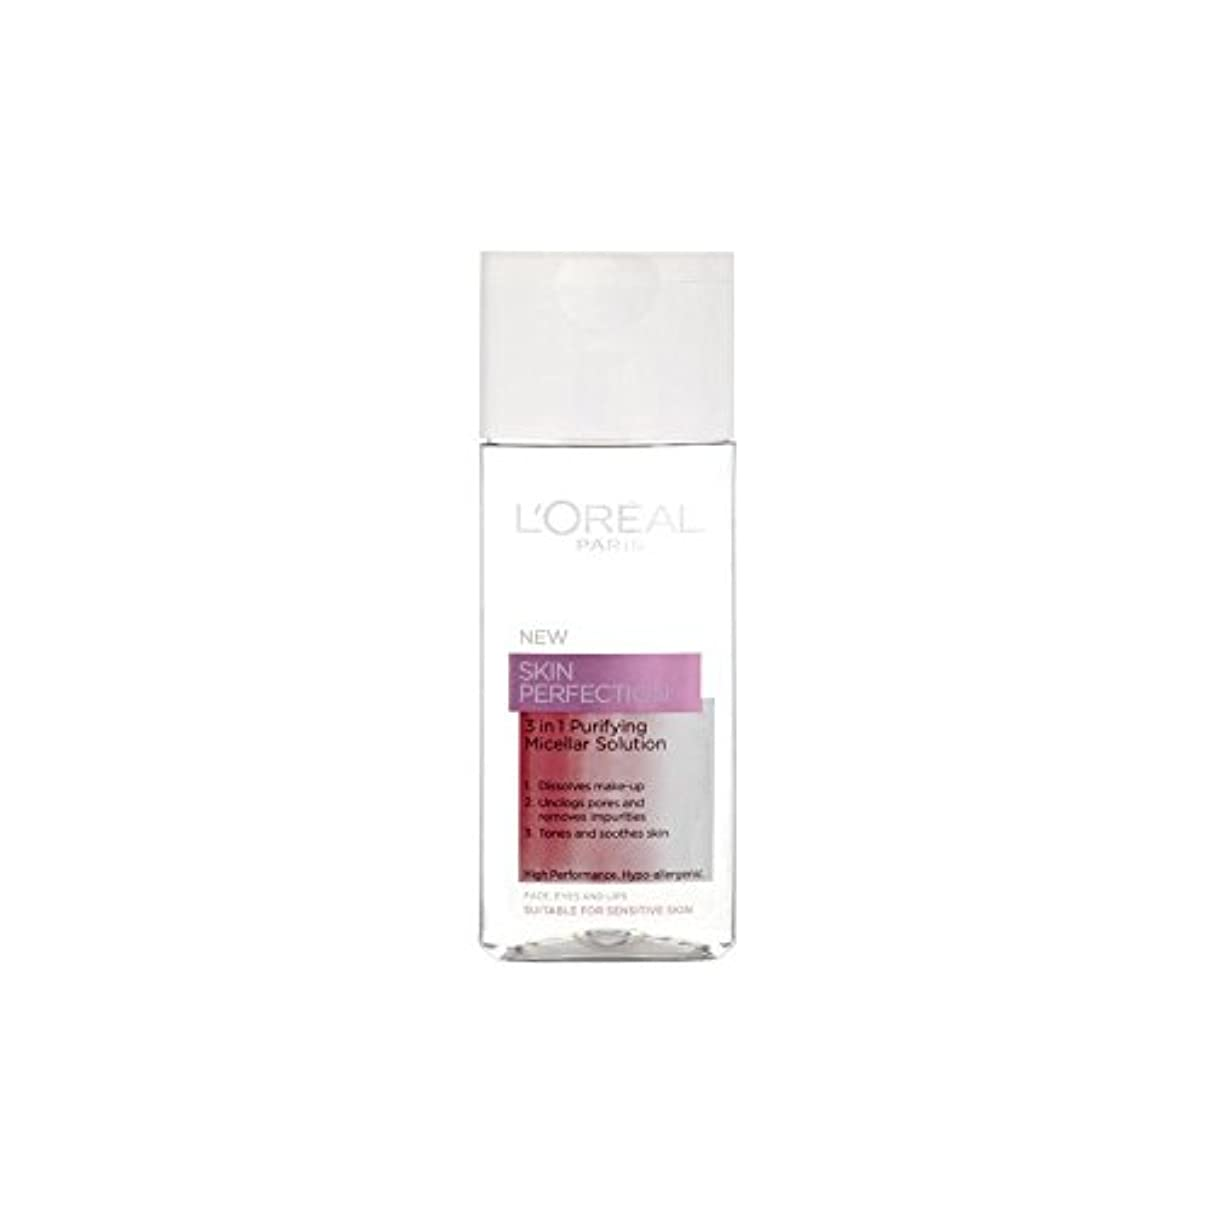 検出する文明化アライアンスL'Oreal Paris Dermo Expertise Skin Perfection 3 In 1 Purifying Micellar Solution (200ml) (Pack of 6) - 1つの精製ミセル...